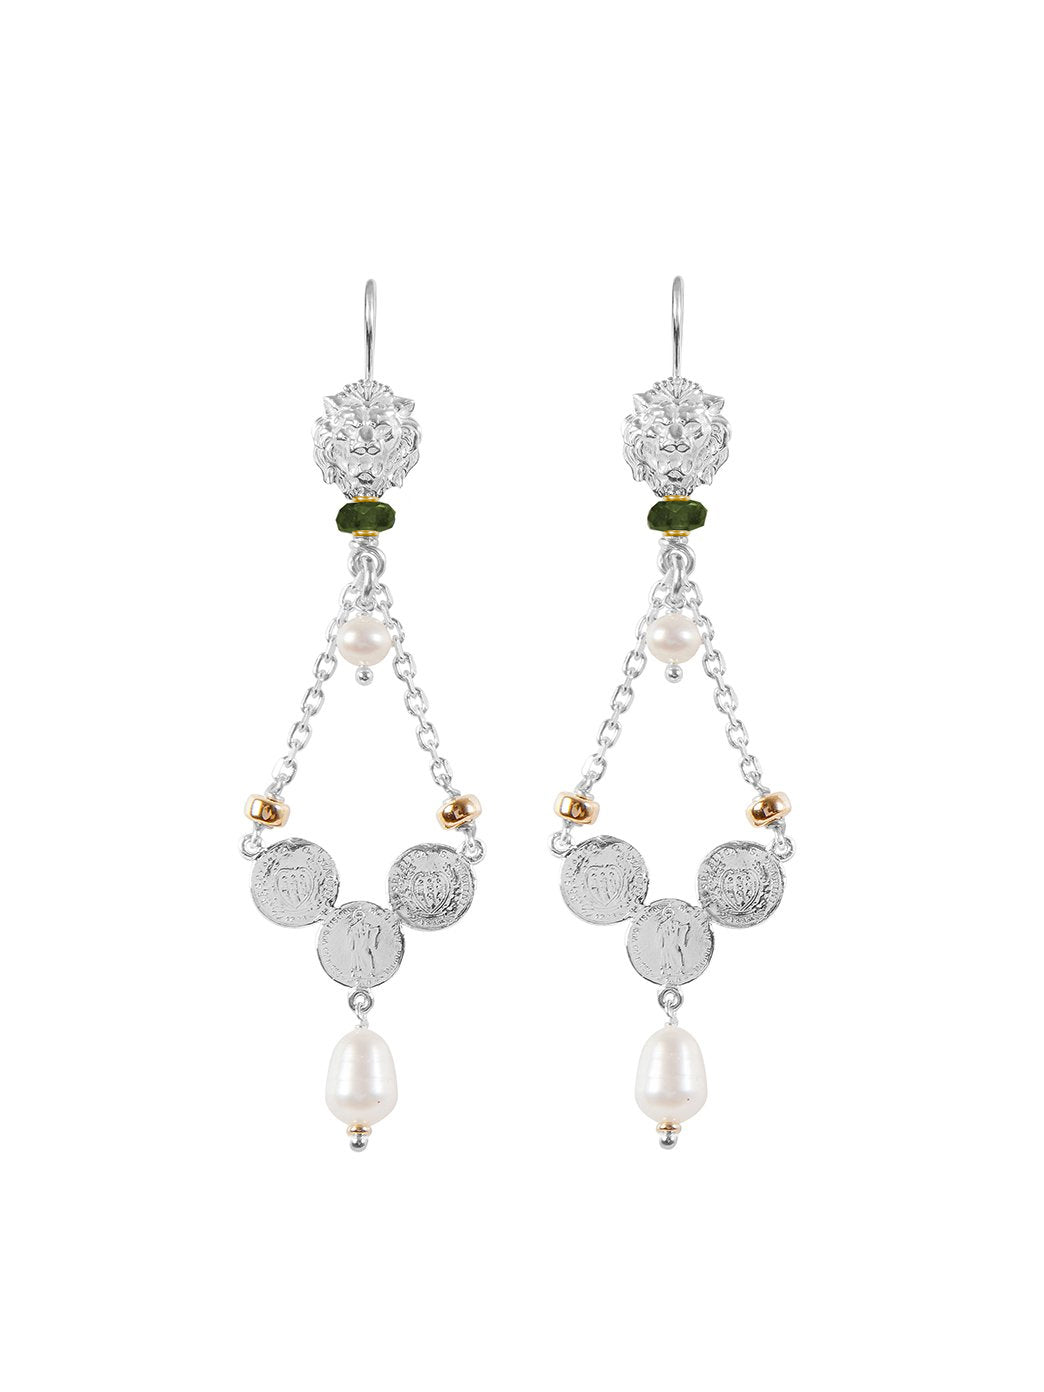 Fiorina Jewellery Trevi Earrings Green Tourmaline